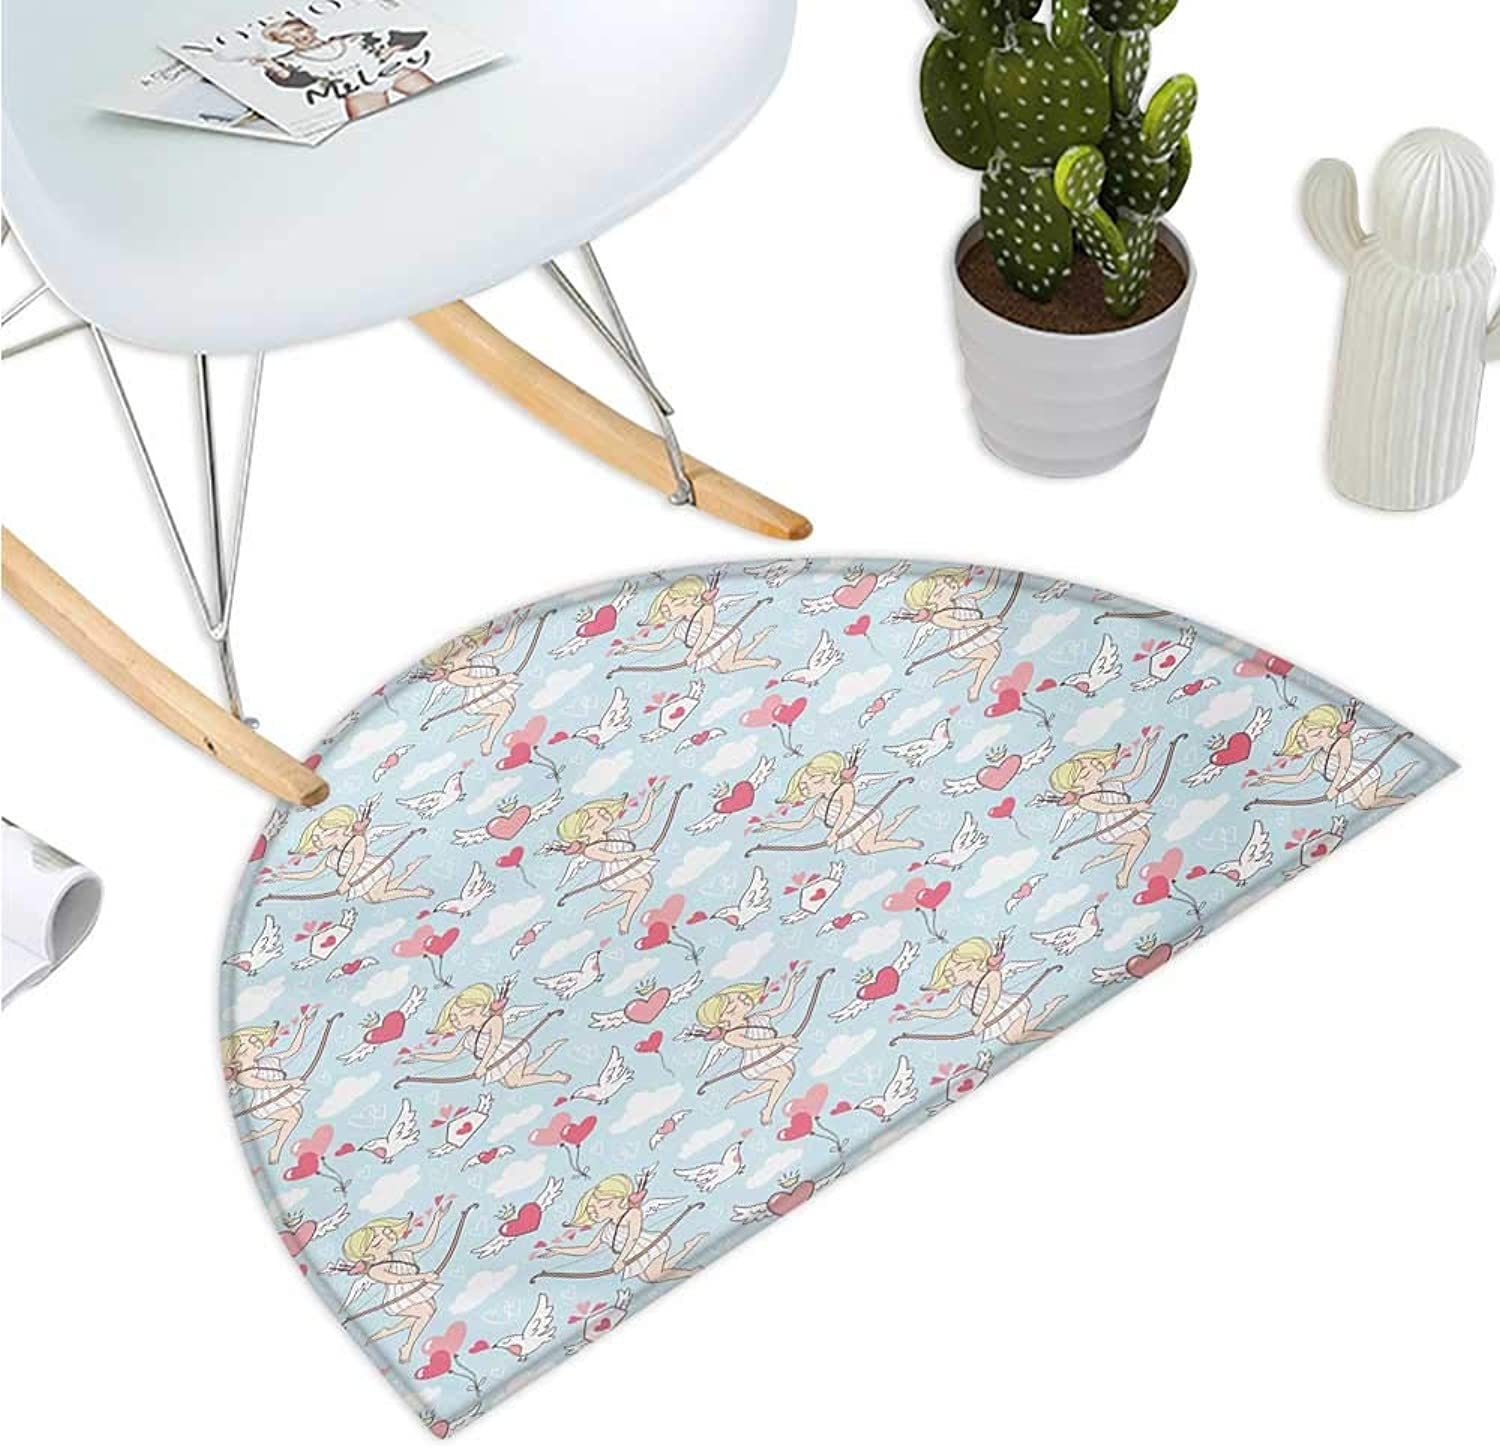 Angel Semicircular Cushion Cupid Girls Winged Hearts Flying in The Sky Doves Clouds Happiness Entry Door Mat H 39.3  xD 59  bluesh Coral Baby bluee White